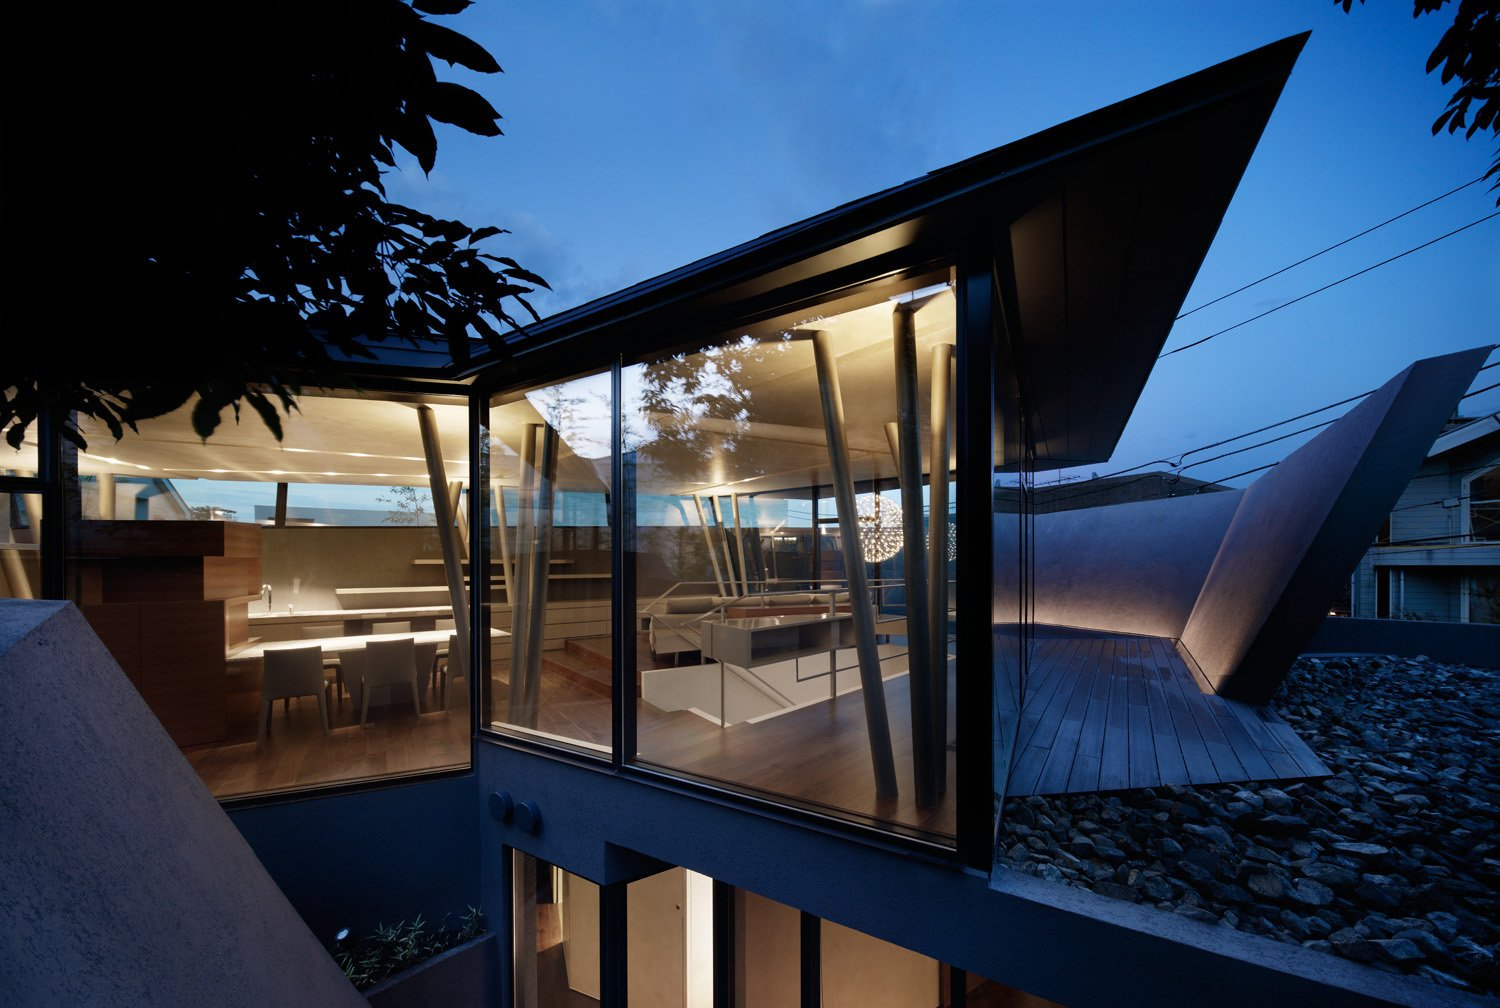 The architects describe the upstairs views as transporting the residents to a rocky mountain.